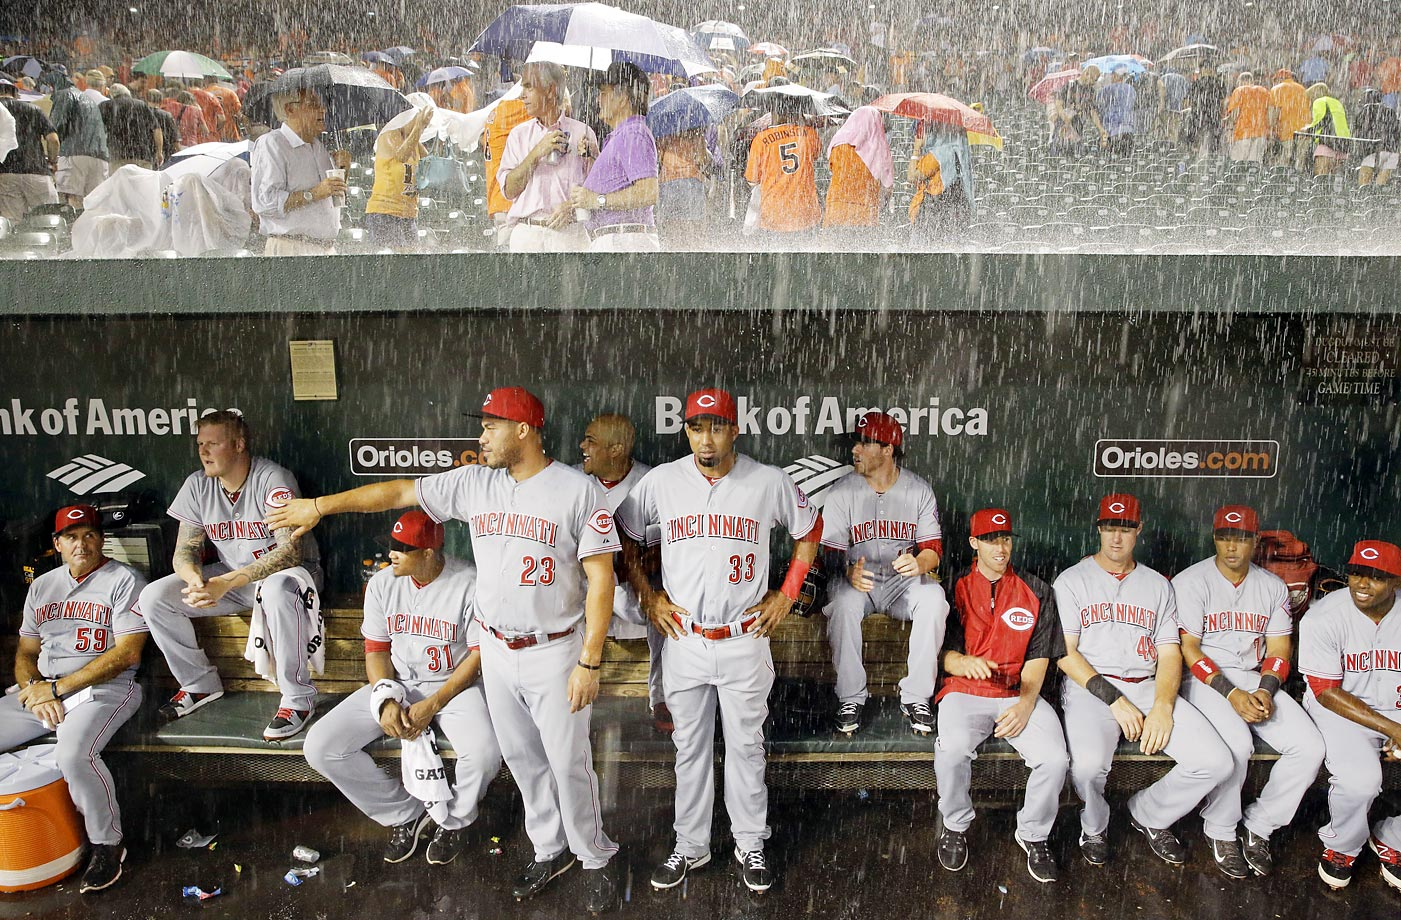 Heavy rain falls on the Cincinnati Reds during a Sept. 2 game against the Baltimore Orioles.